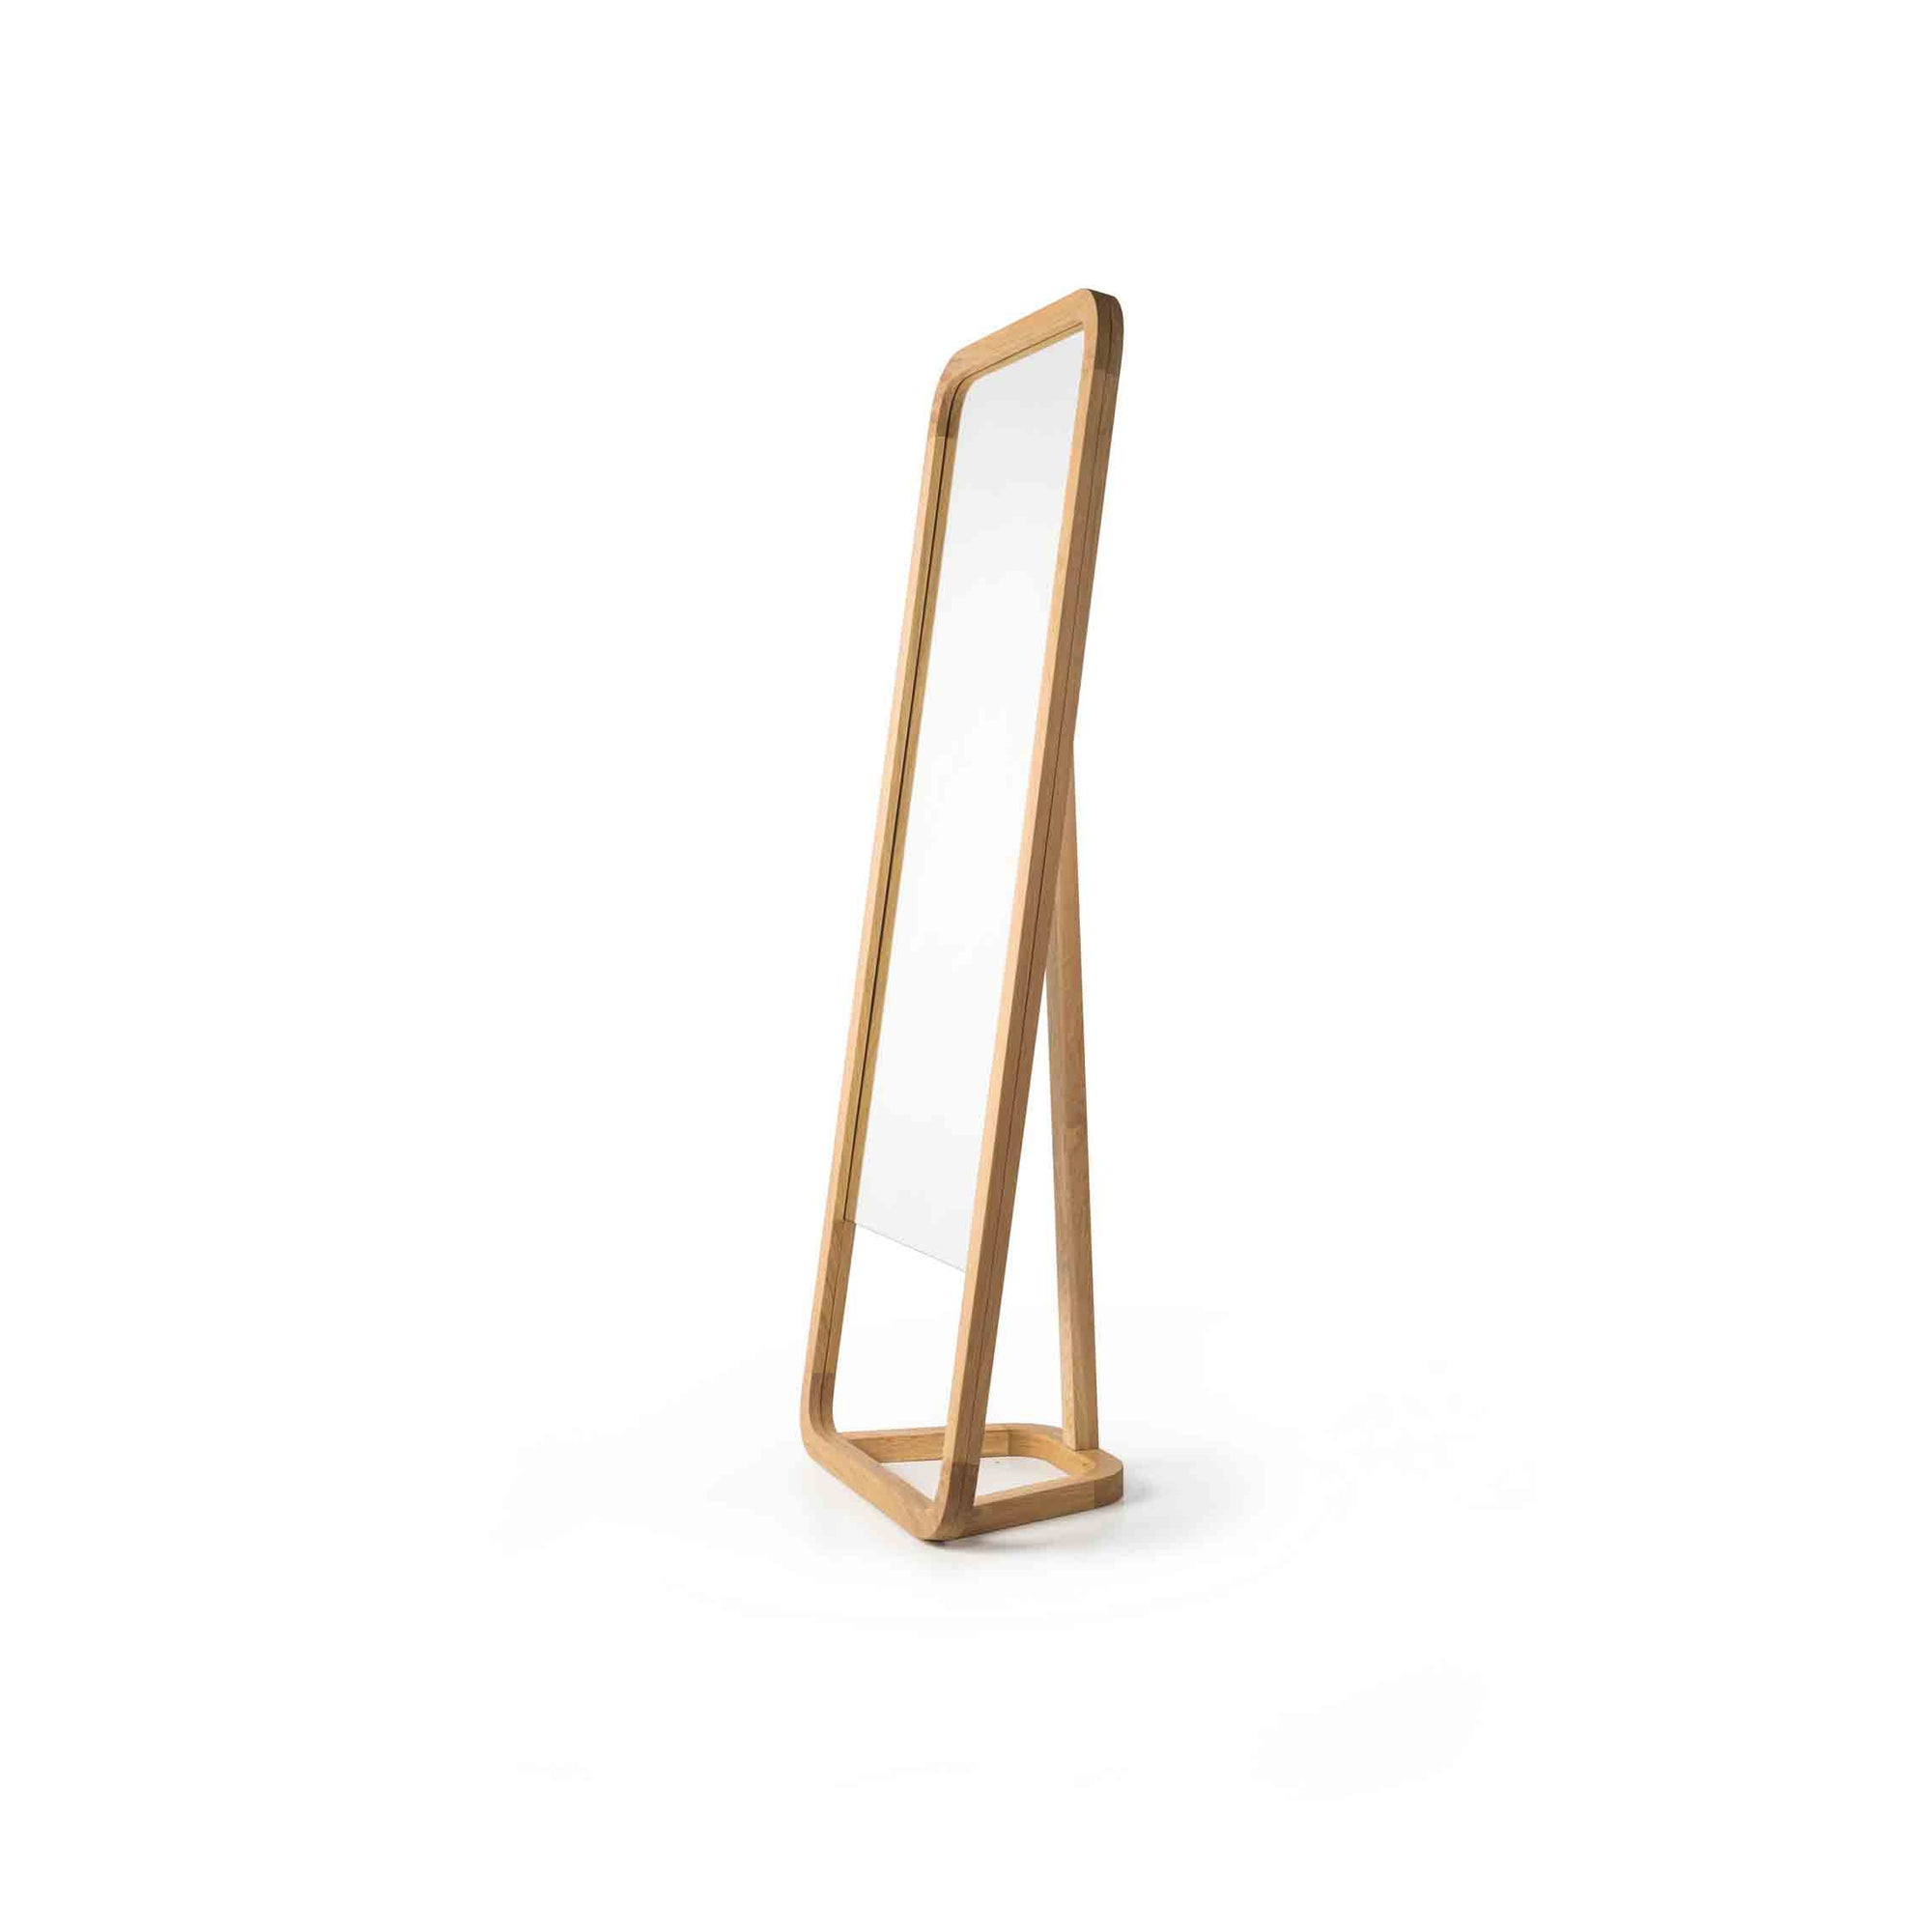 Rubble Inerior Design Marketplace, Lazy Oak Wood Standing Mirror by Miguel Soeiro Porventura